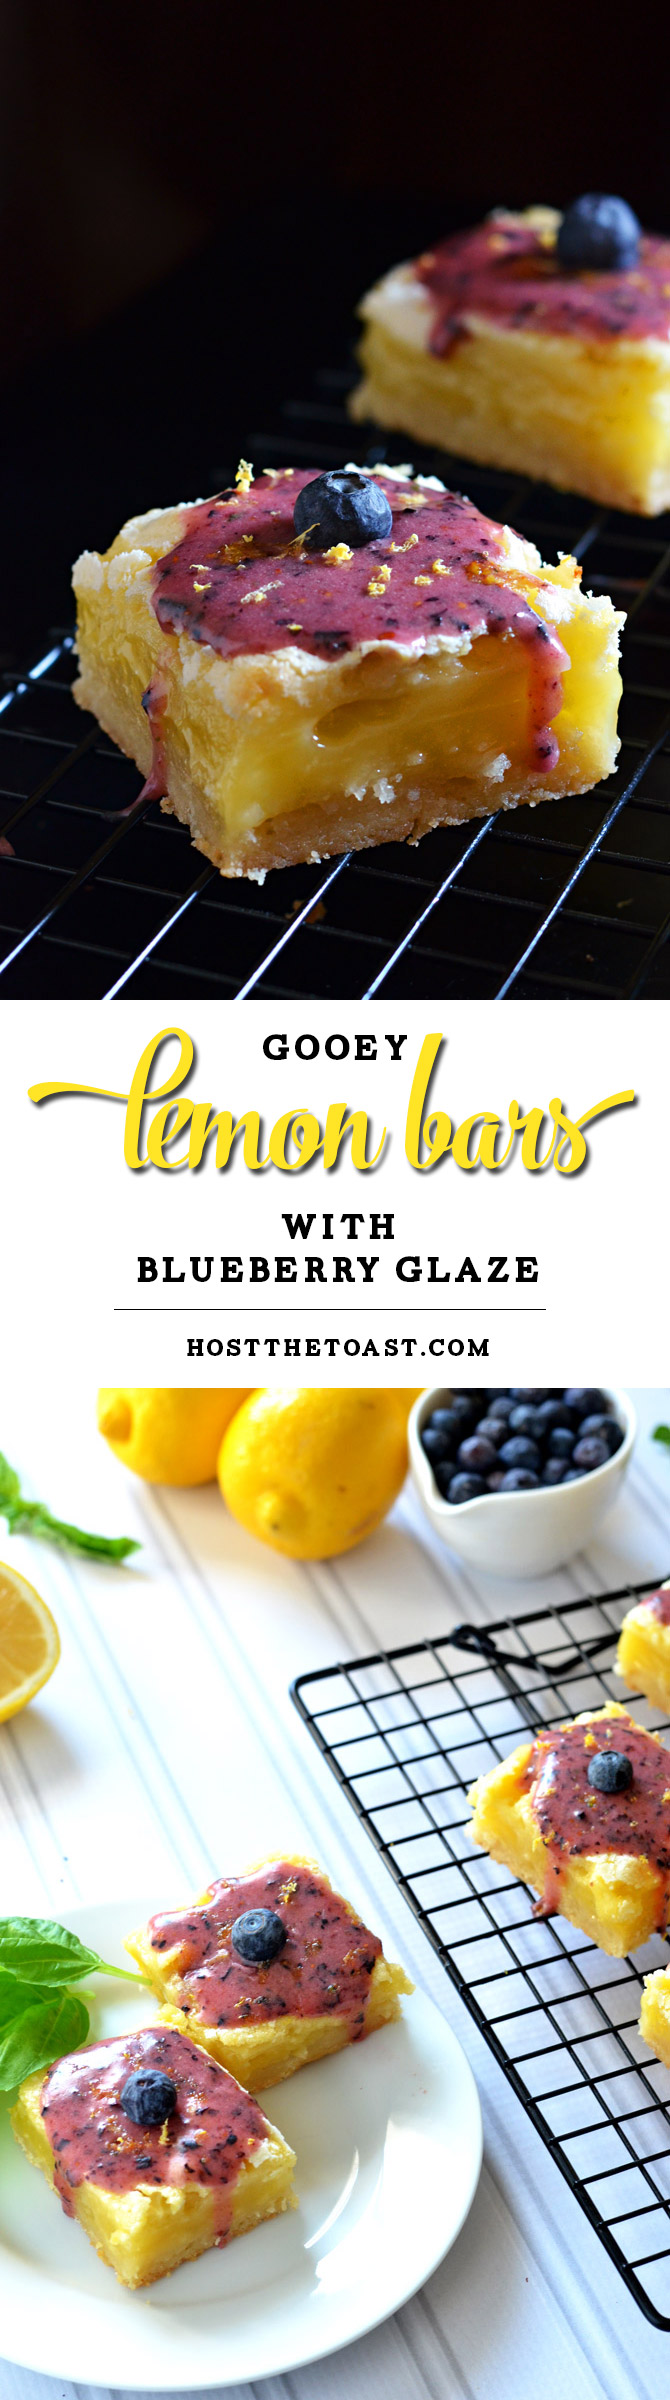 Gooey Lemon Bars with Blueberry Glaze. Tangy, sweet, rich, gooey, and out of this world. | hostthetoast.com